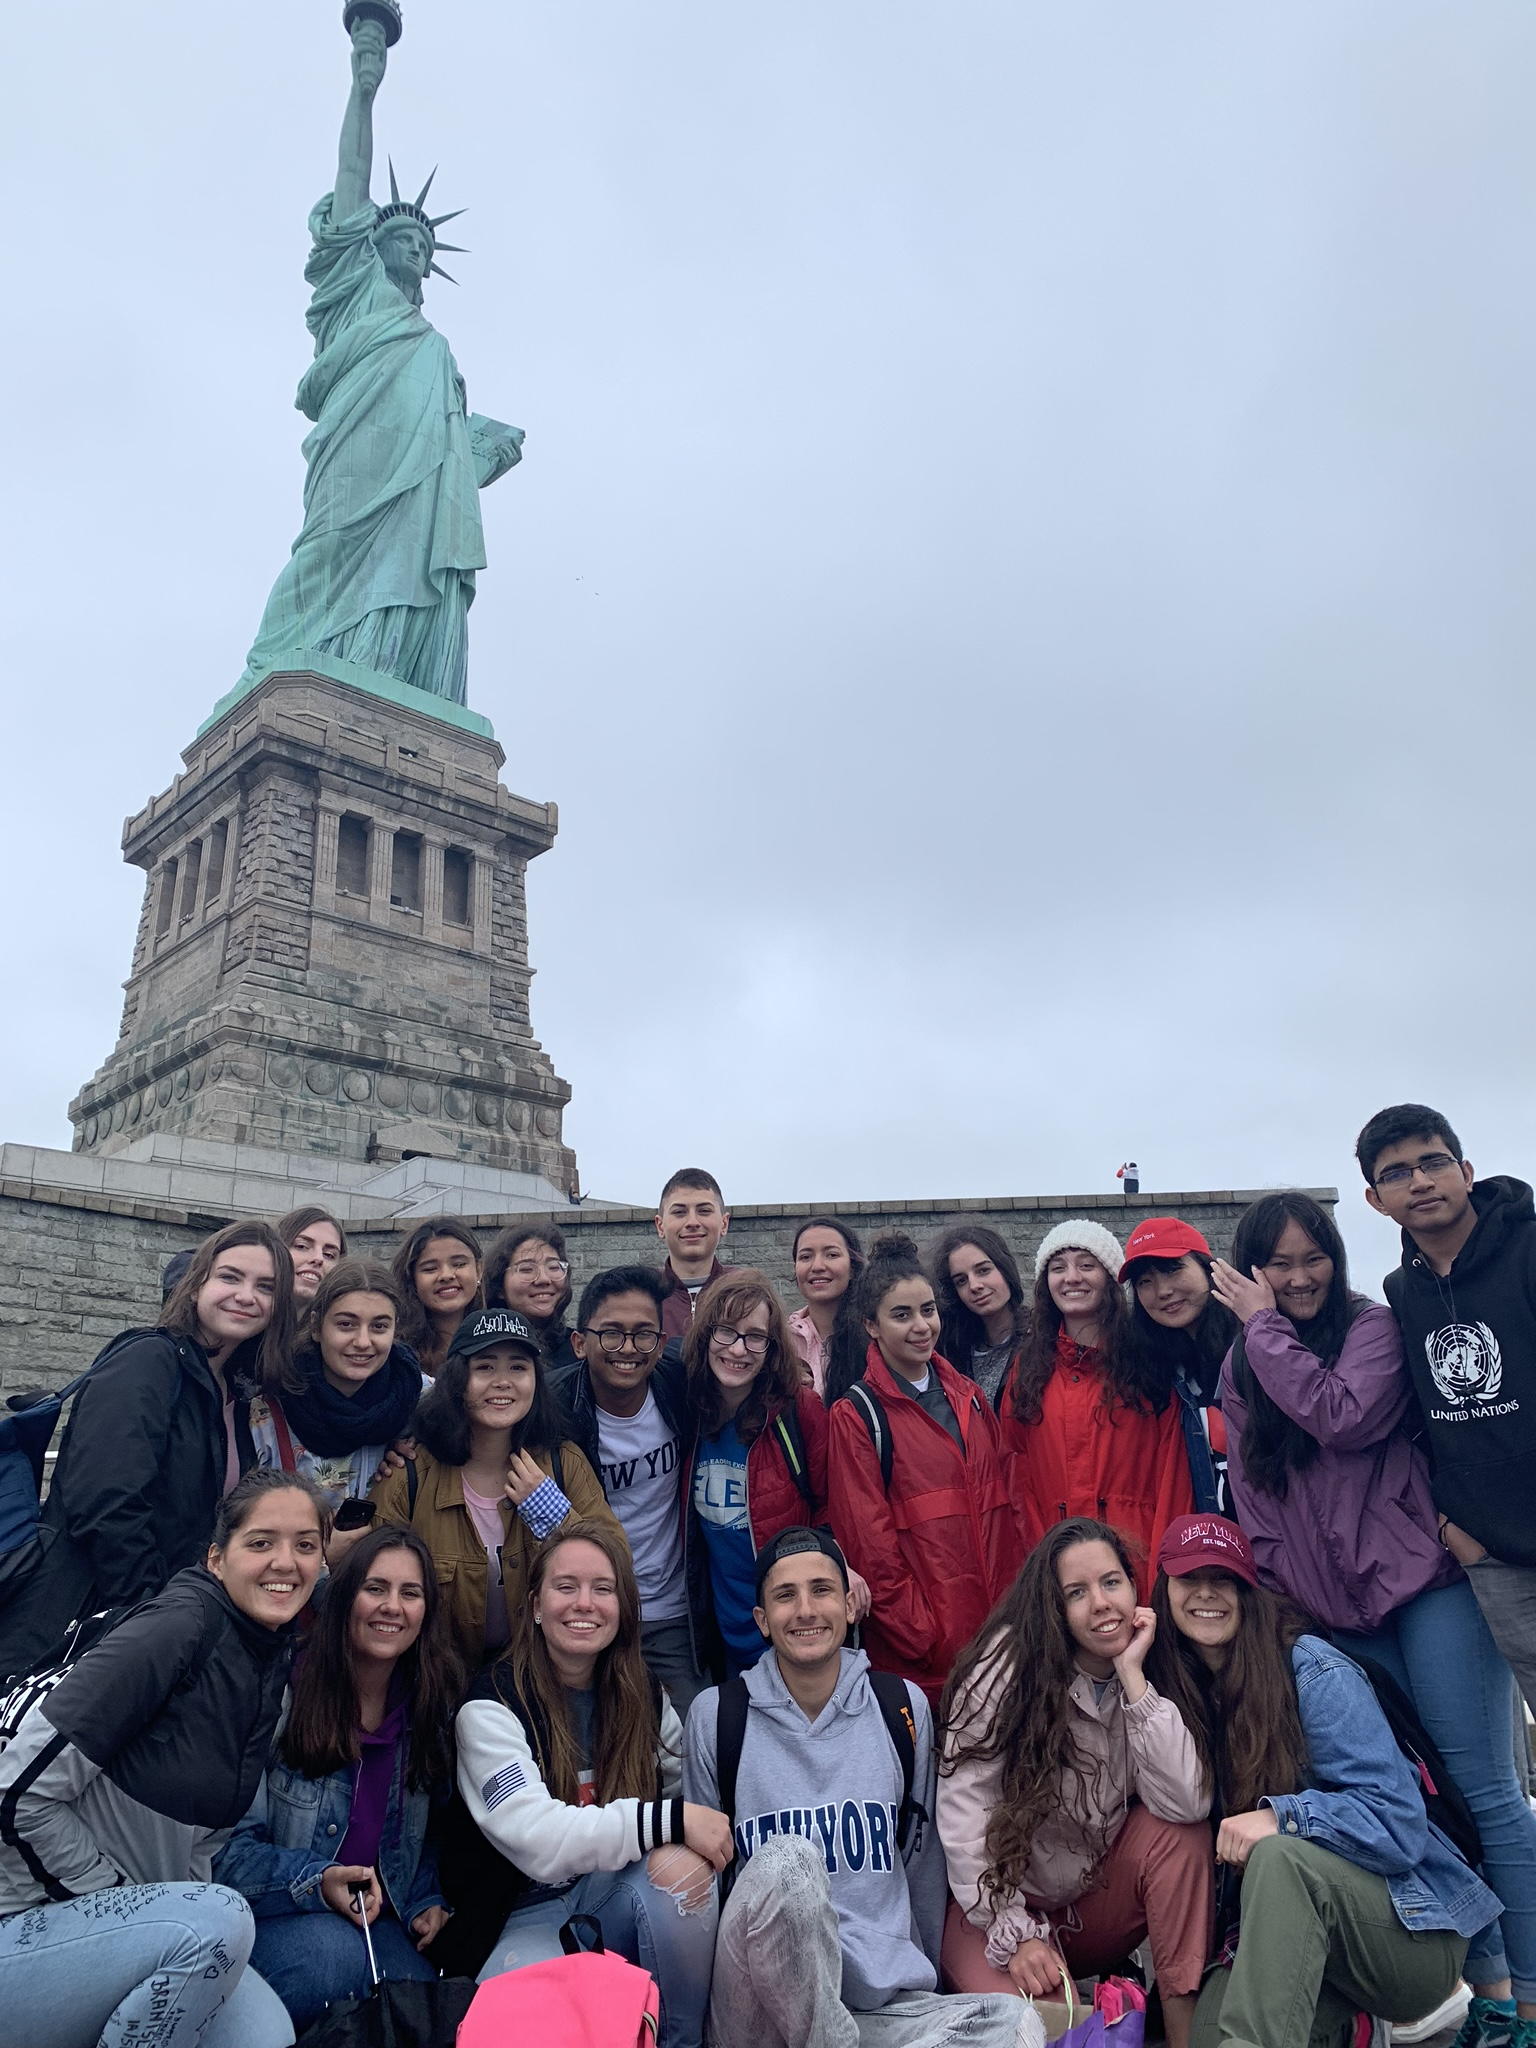 Vira (center) with other World Link PAL-NYC participants, visiting the Statue of Liberty in New York City.